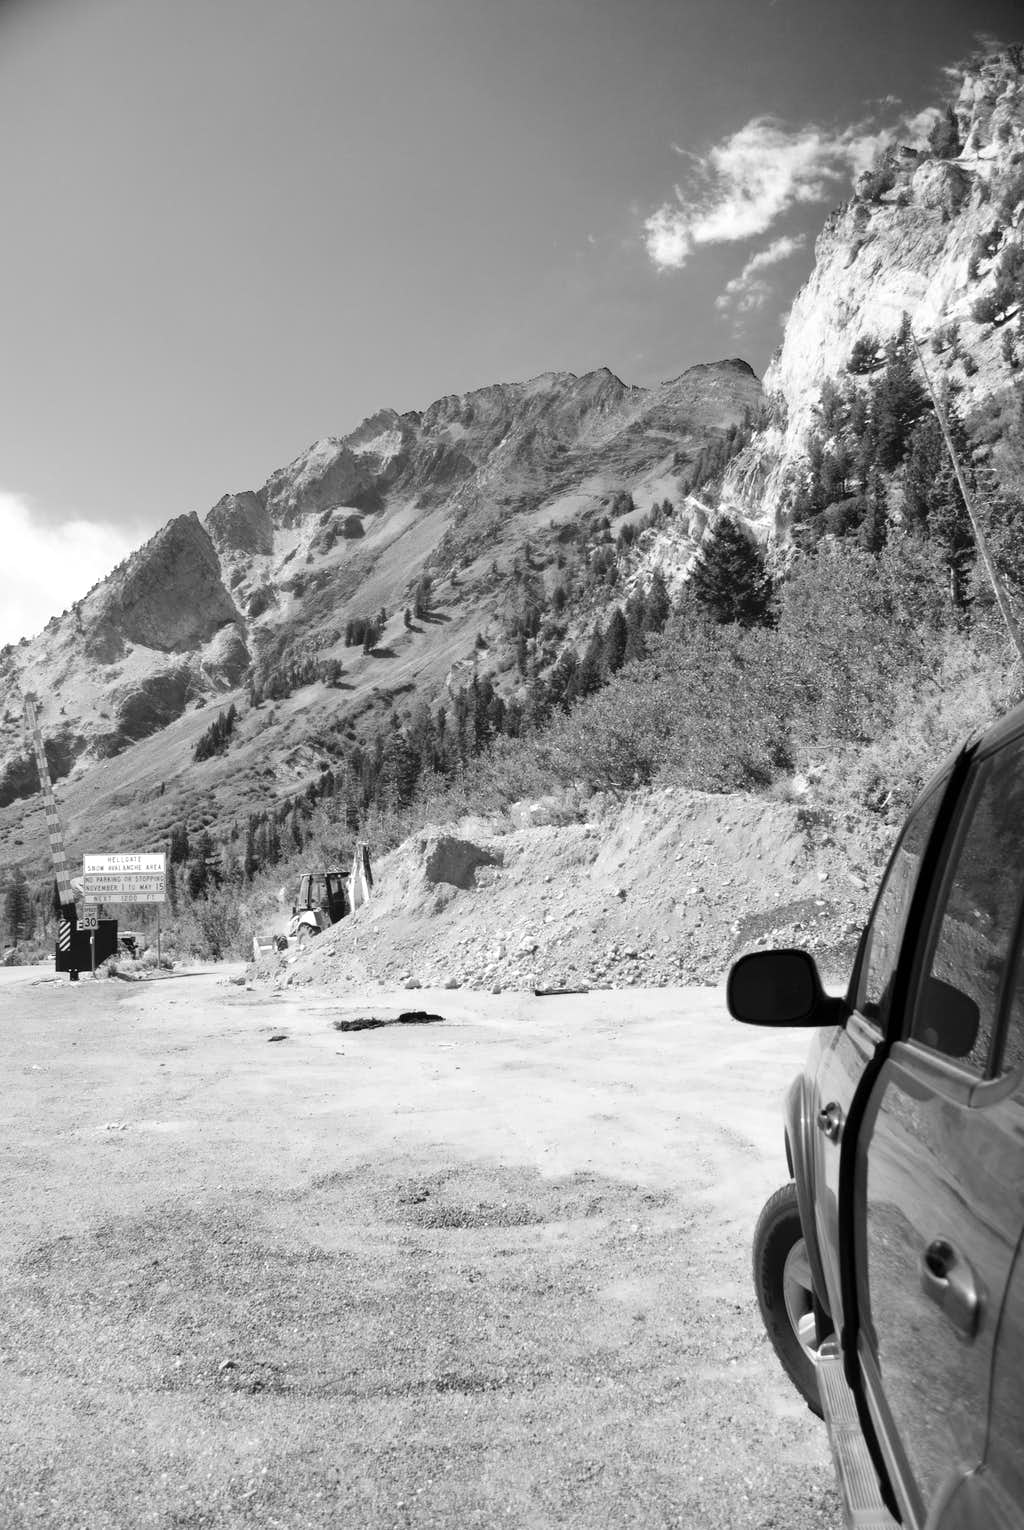 Mt. Superior from the Little Cottonwood Canyon highway.